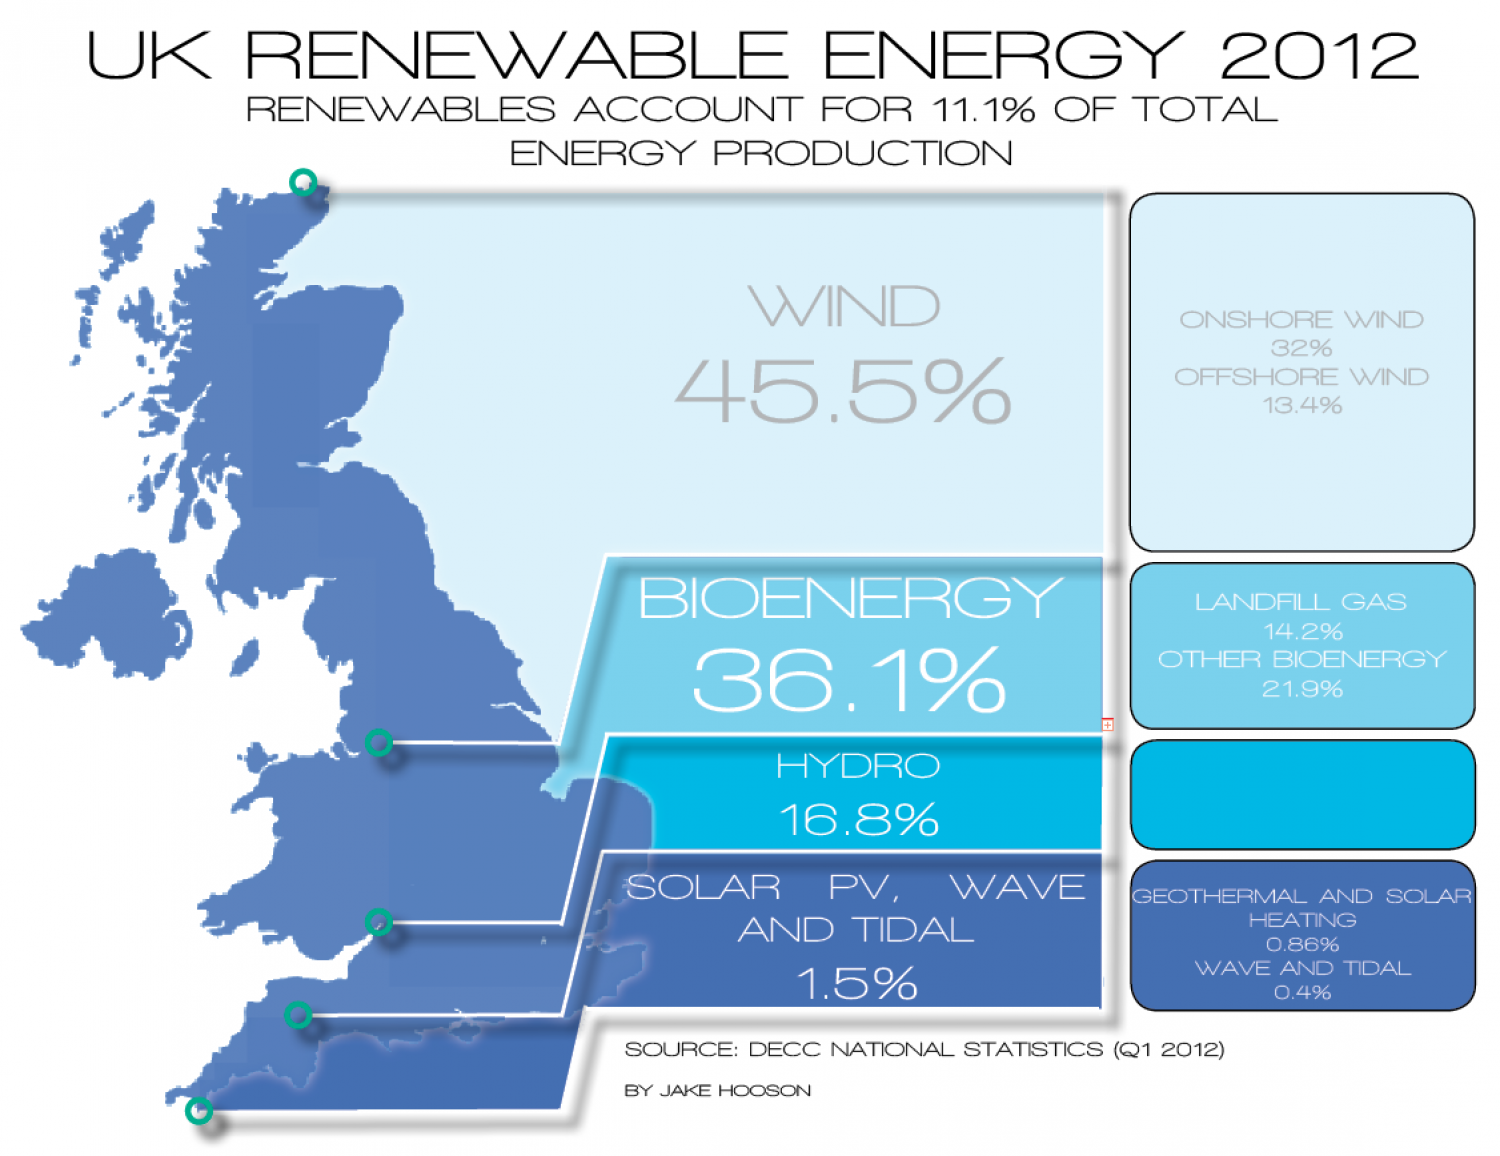 UK Renewable Energy 2012 Infographic